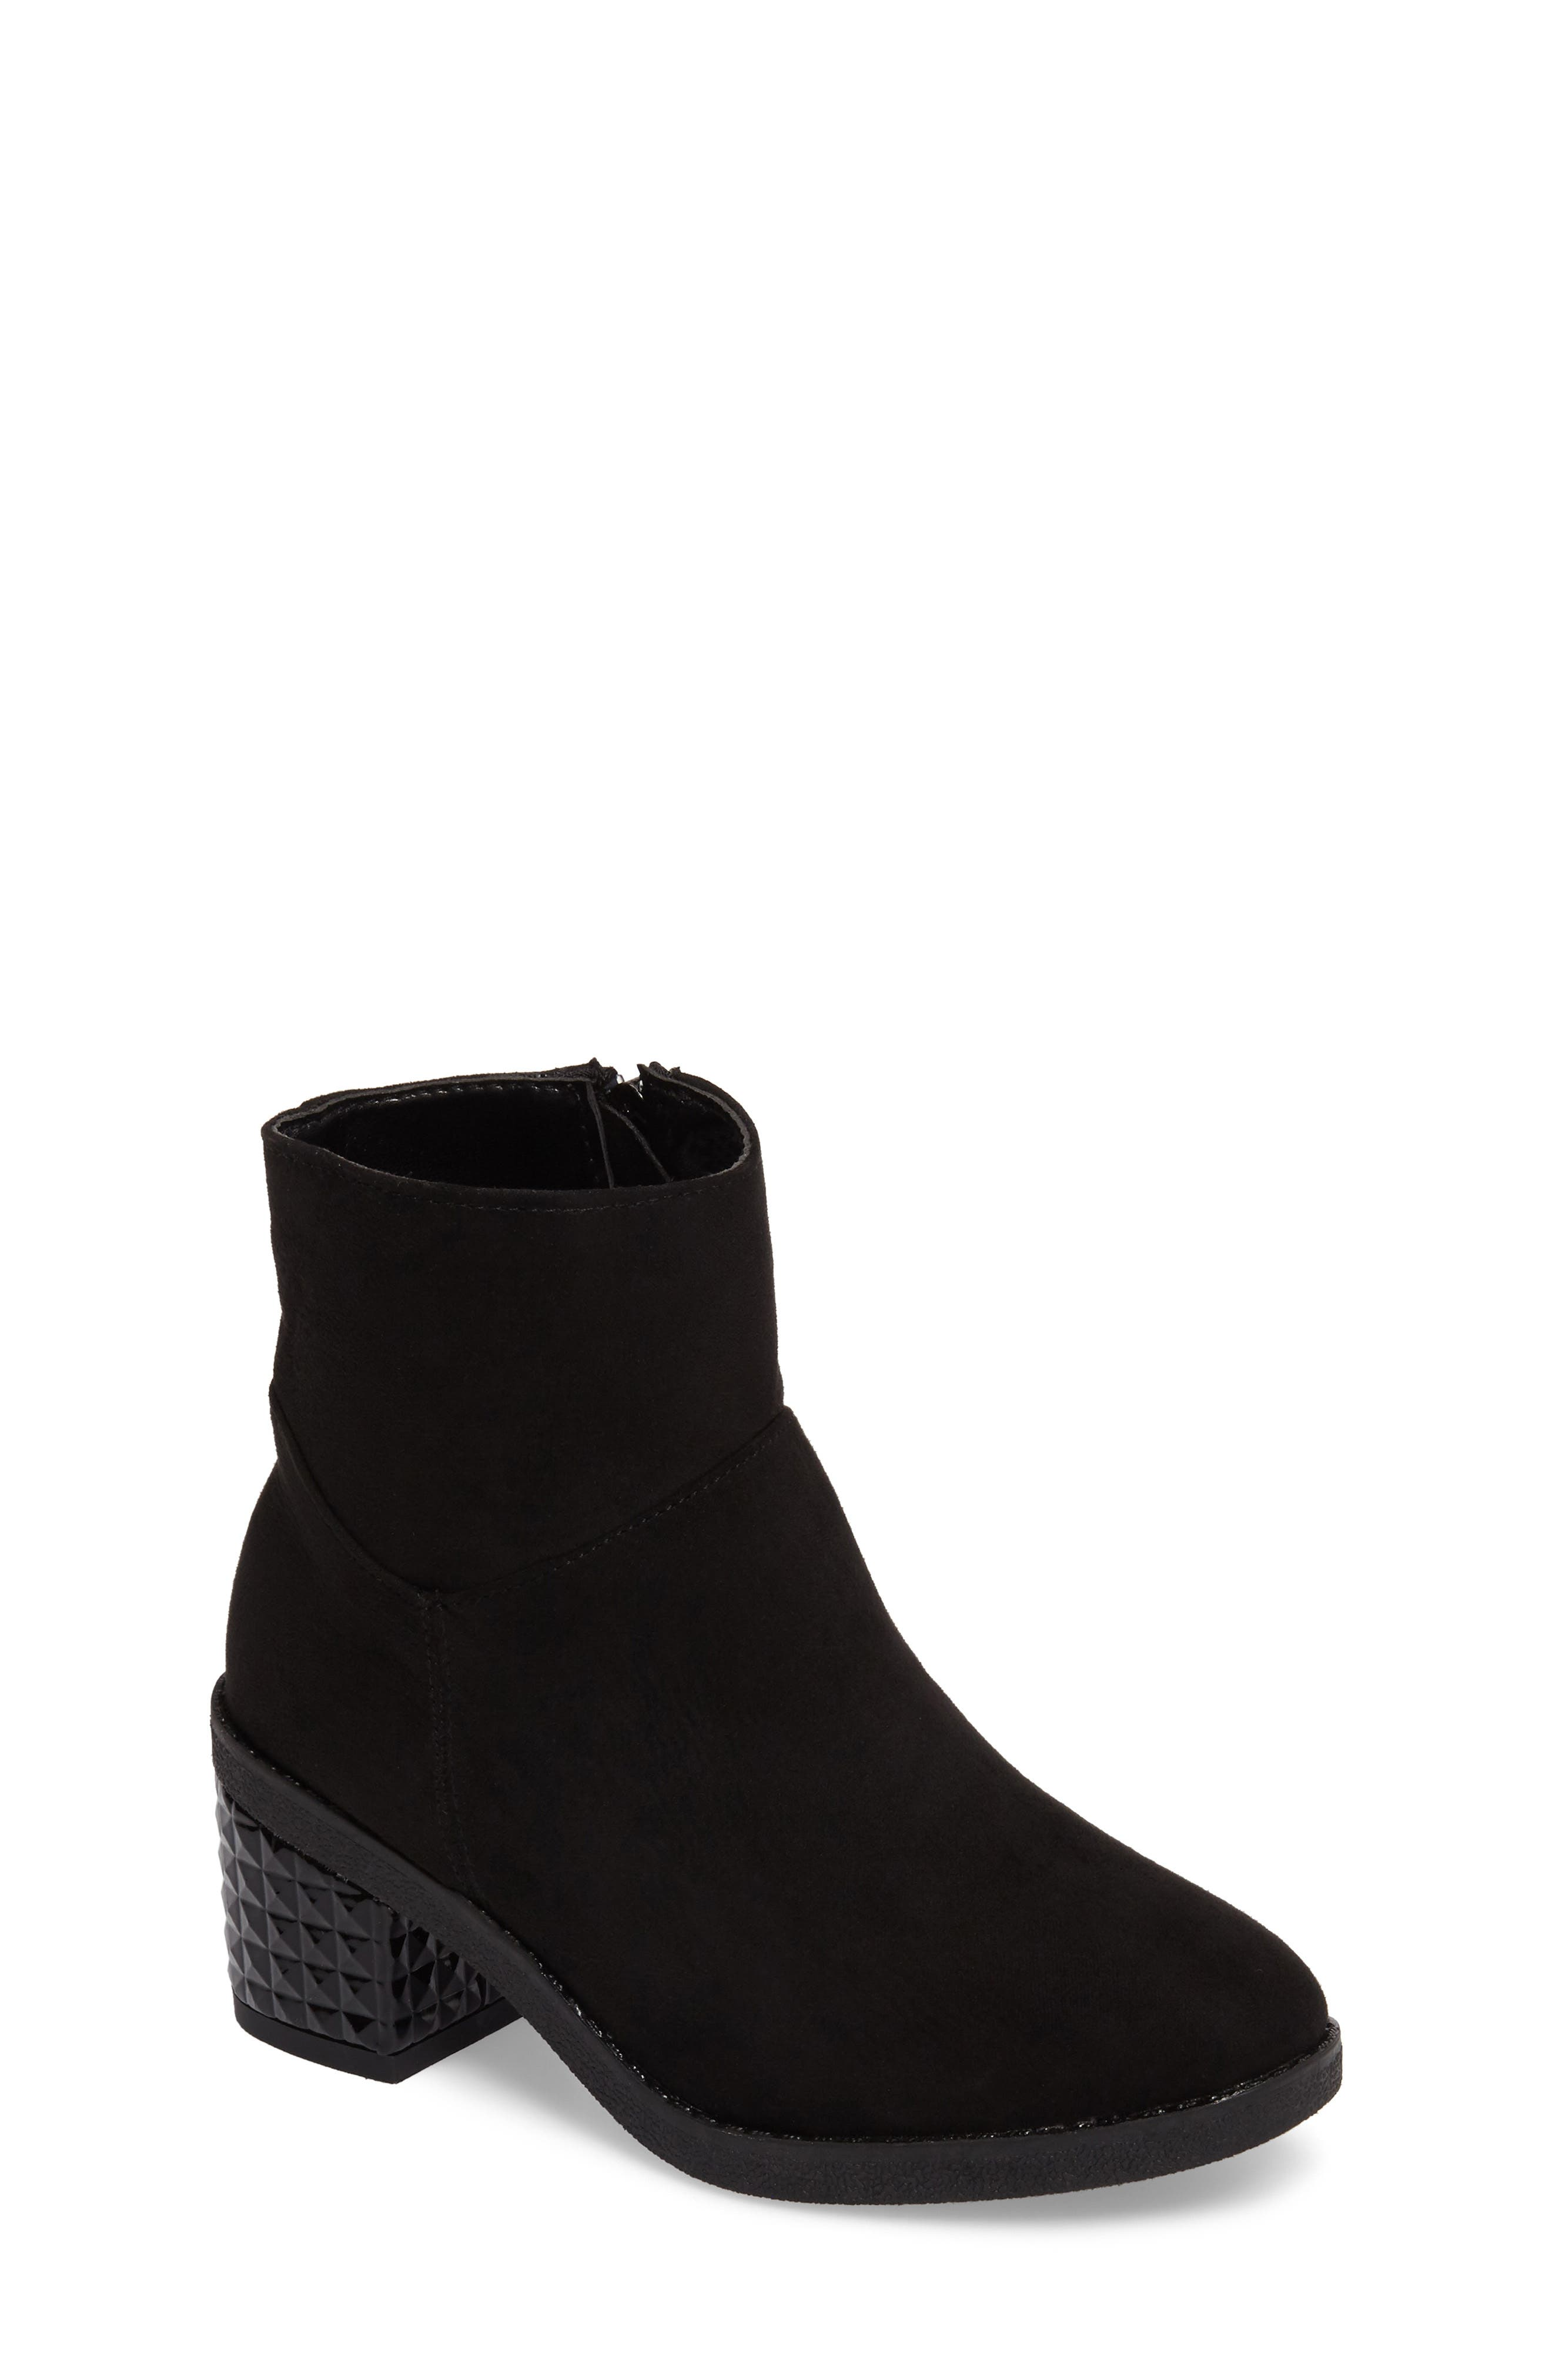 Fawn Dawn Bootie,                             Main thumbnail 1, color,                             Black